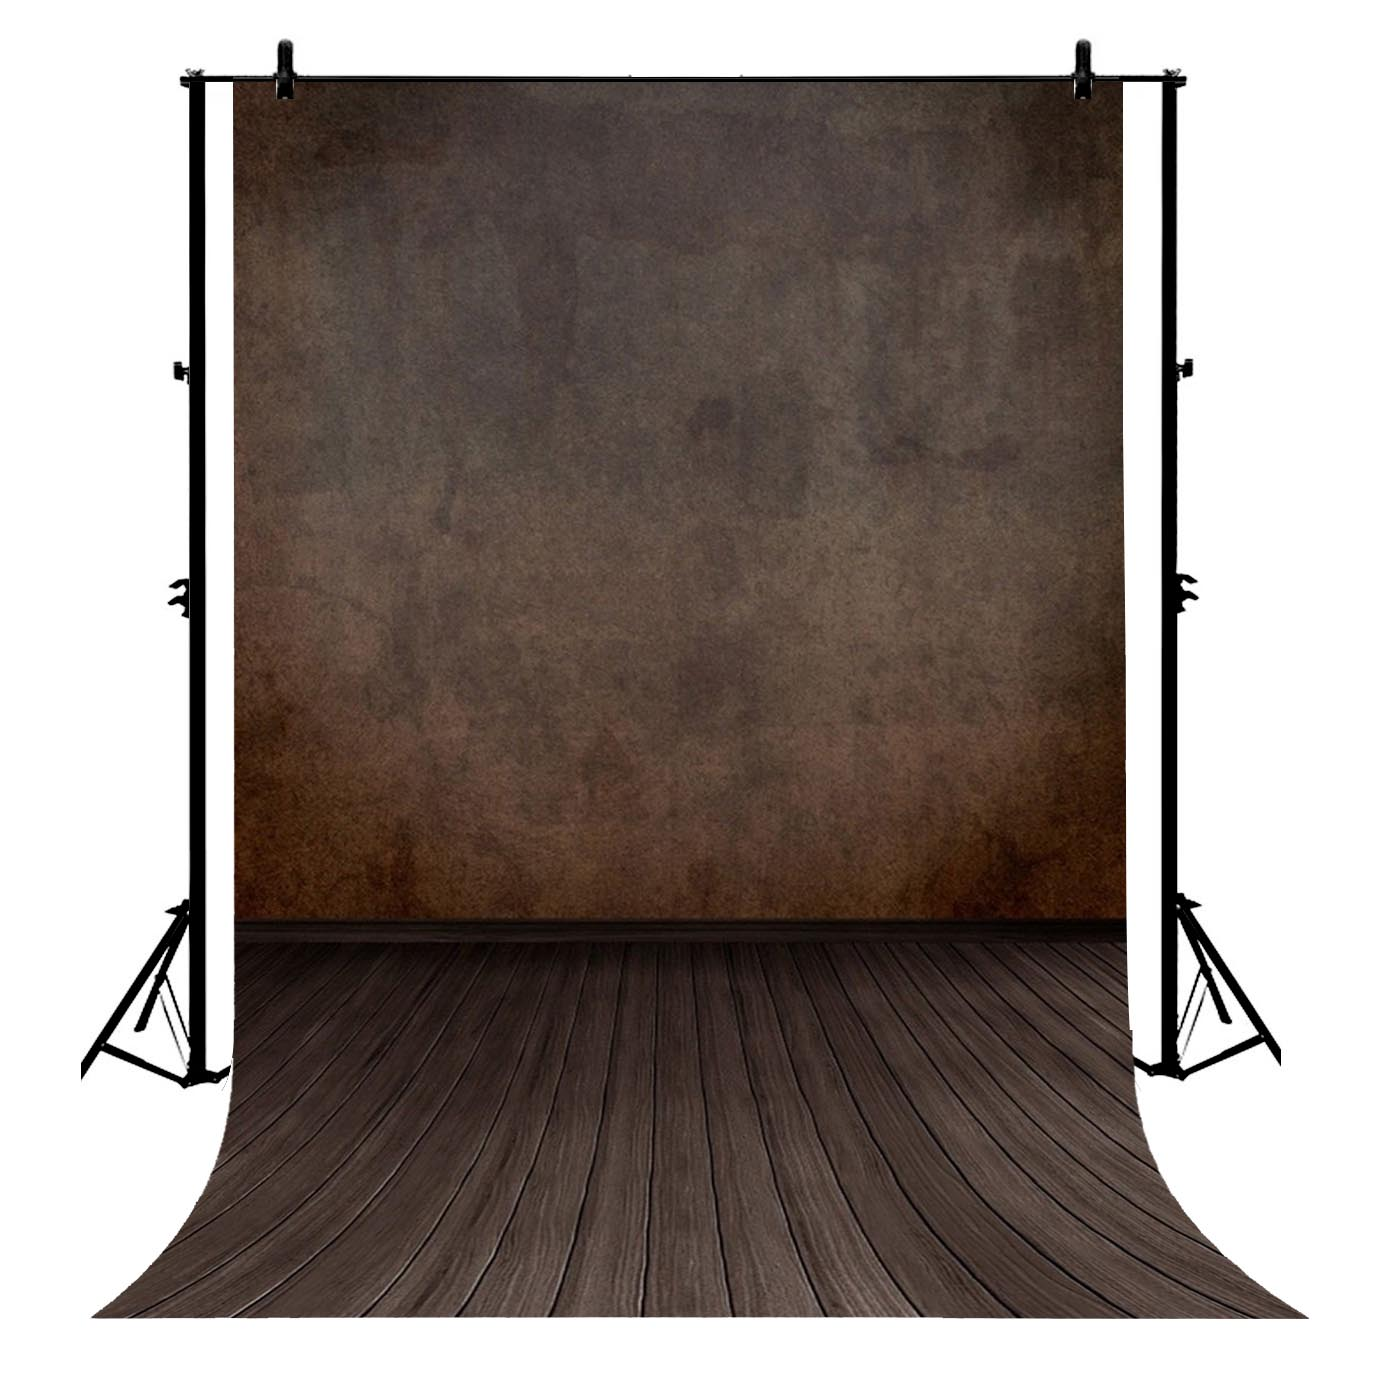 5x7ft Blurry Old Wall Dim Hardwood Floors Scene Polyester Photo Background Portrait Backdrop image